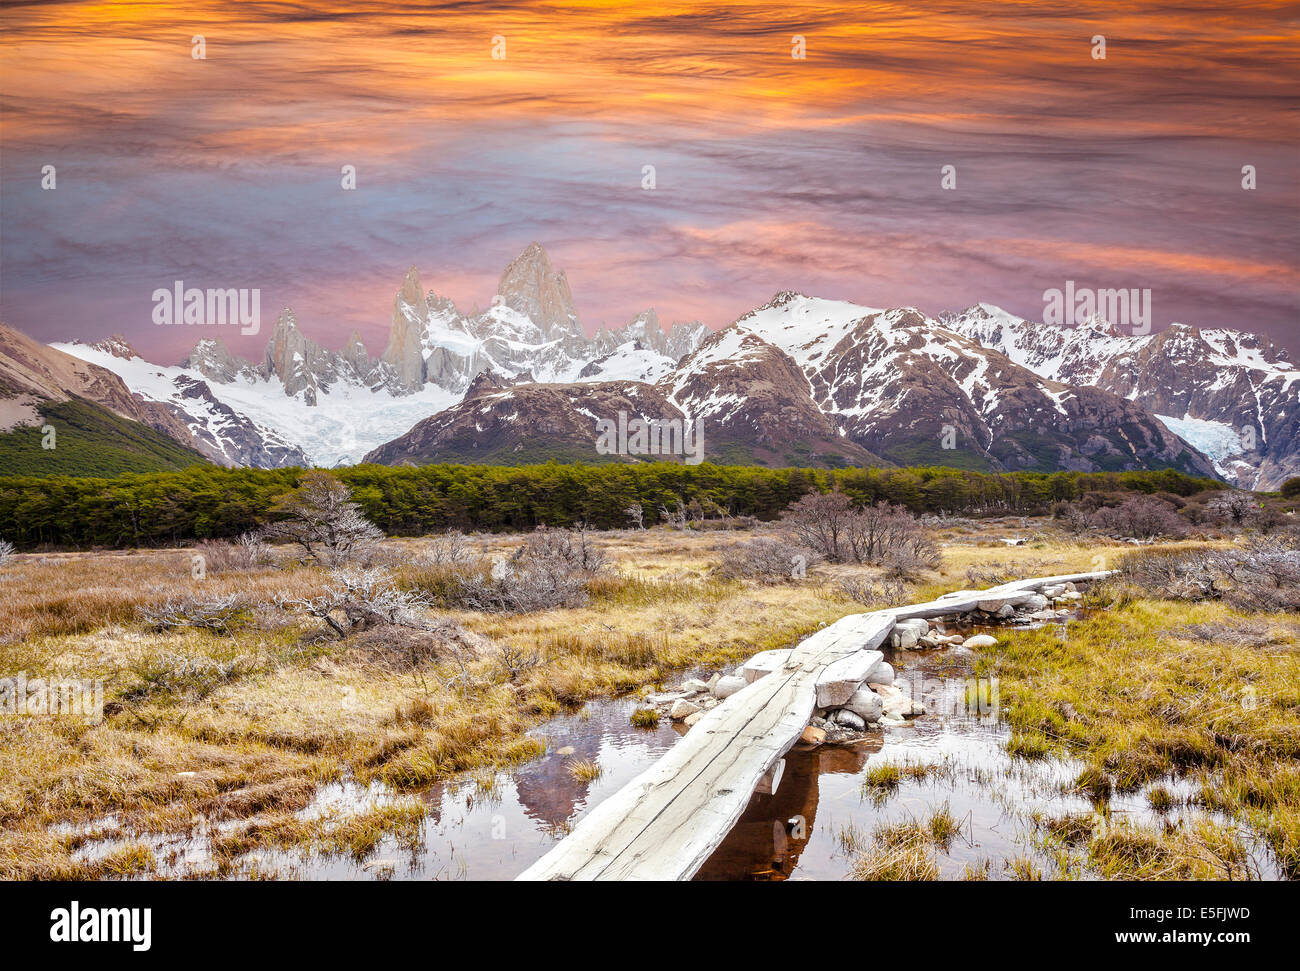 Footbridge in Andes, Fitz Roy mountain range, Patagonia, Argentina Stock Photo